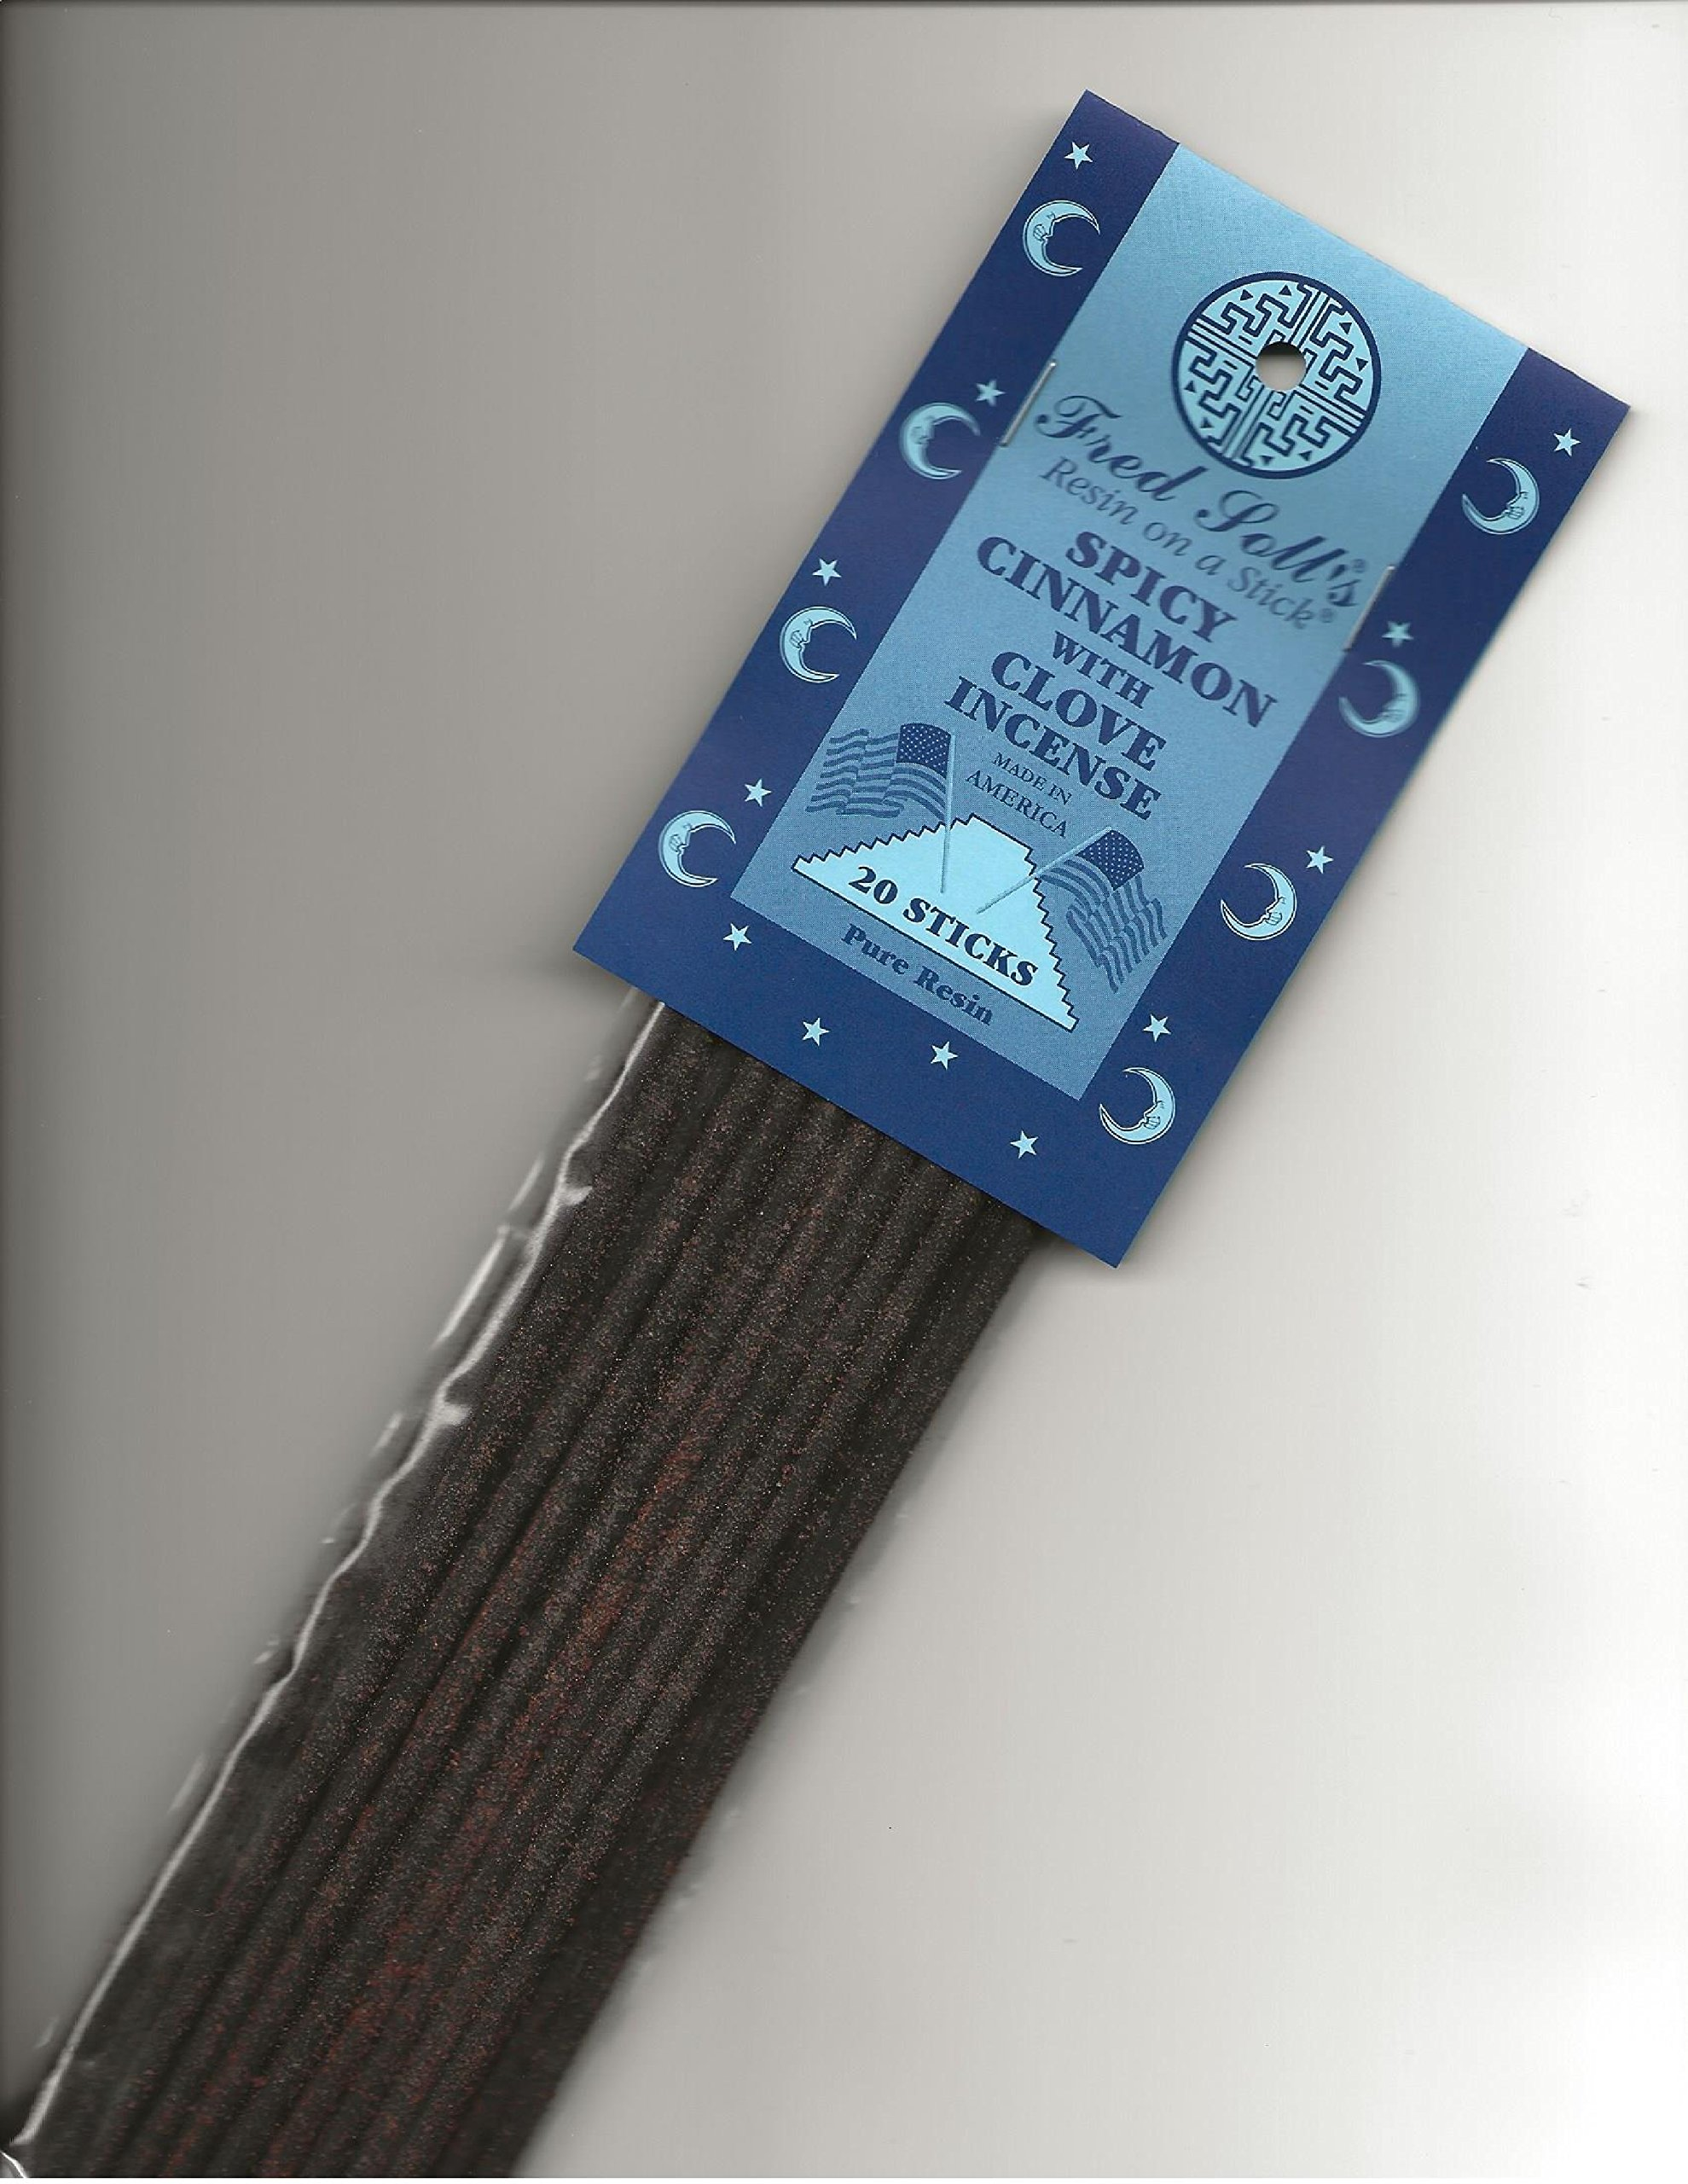 Fred Soll's RESIN ON A STICK Spicy Cinnamon with Clove Incense, 20 Sticks